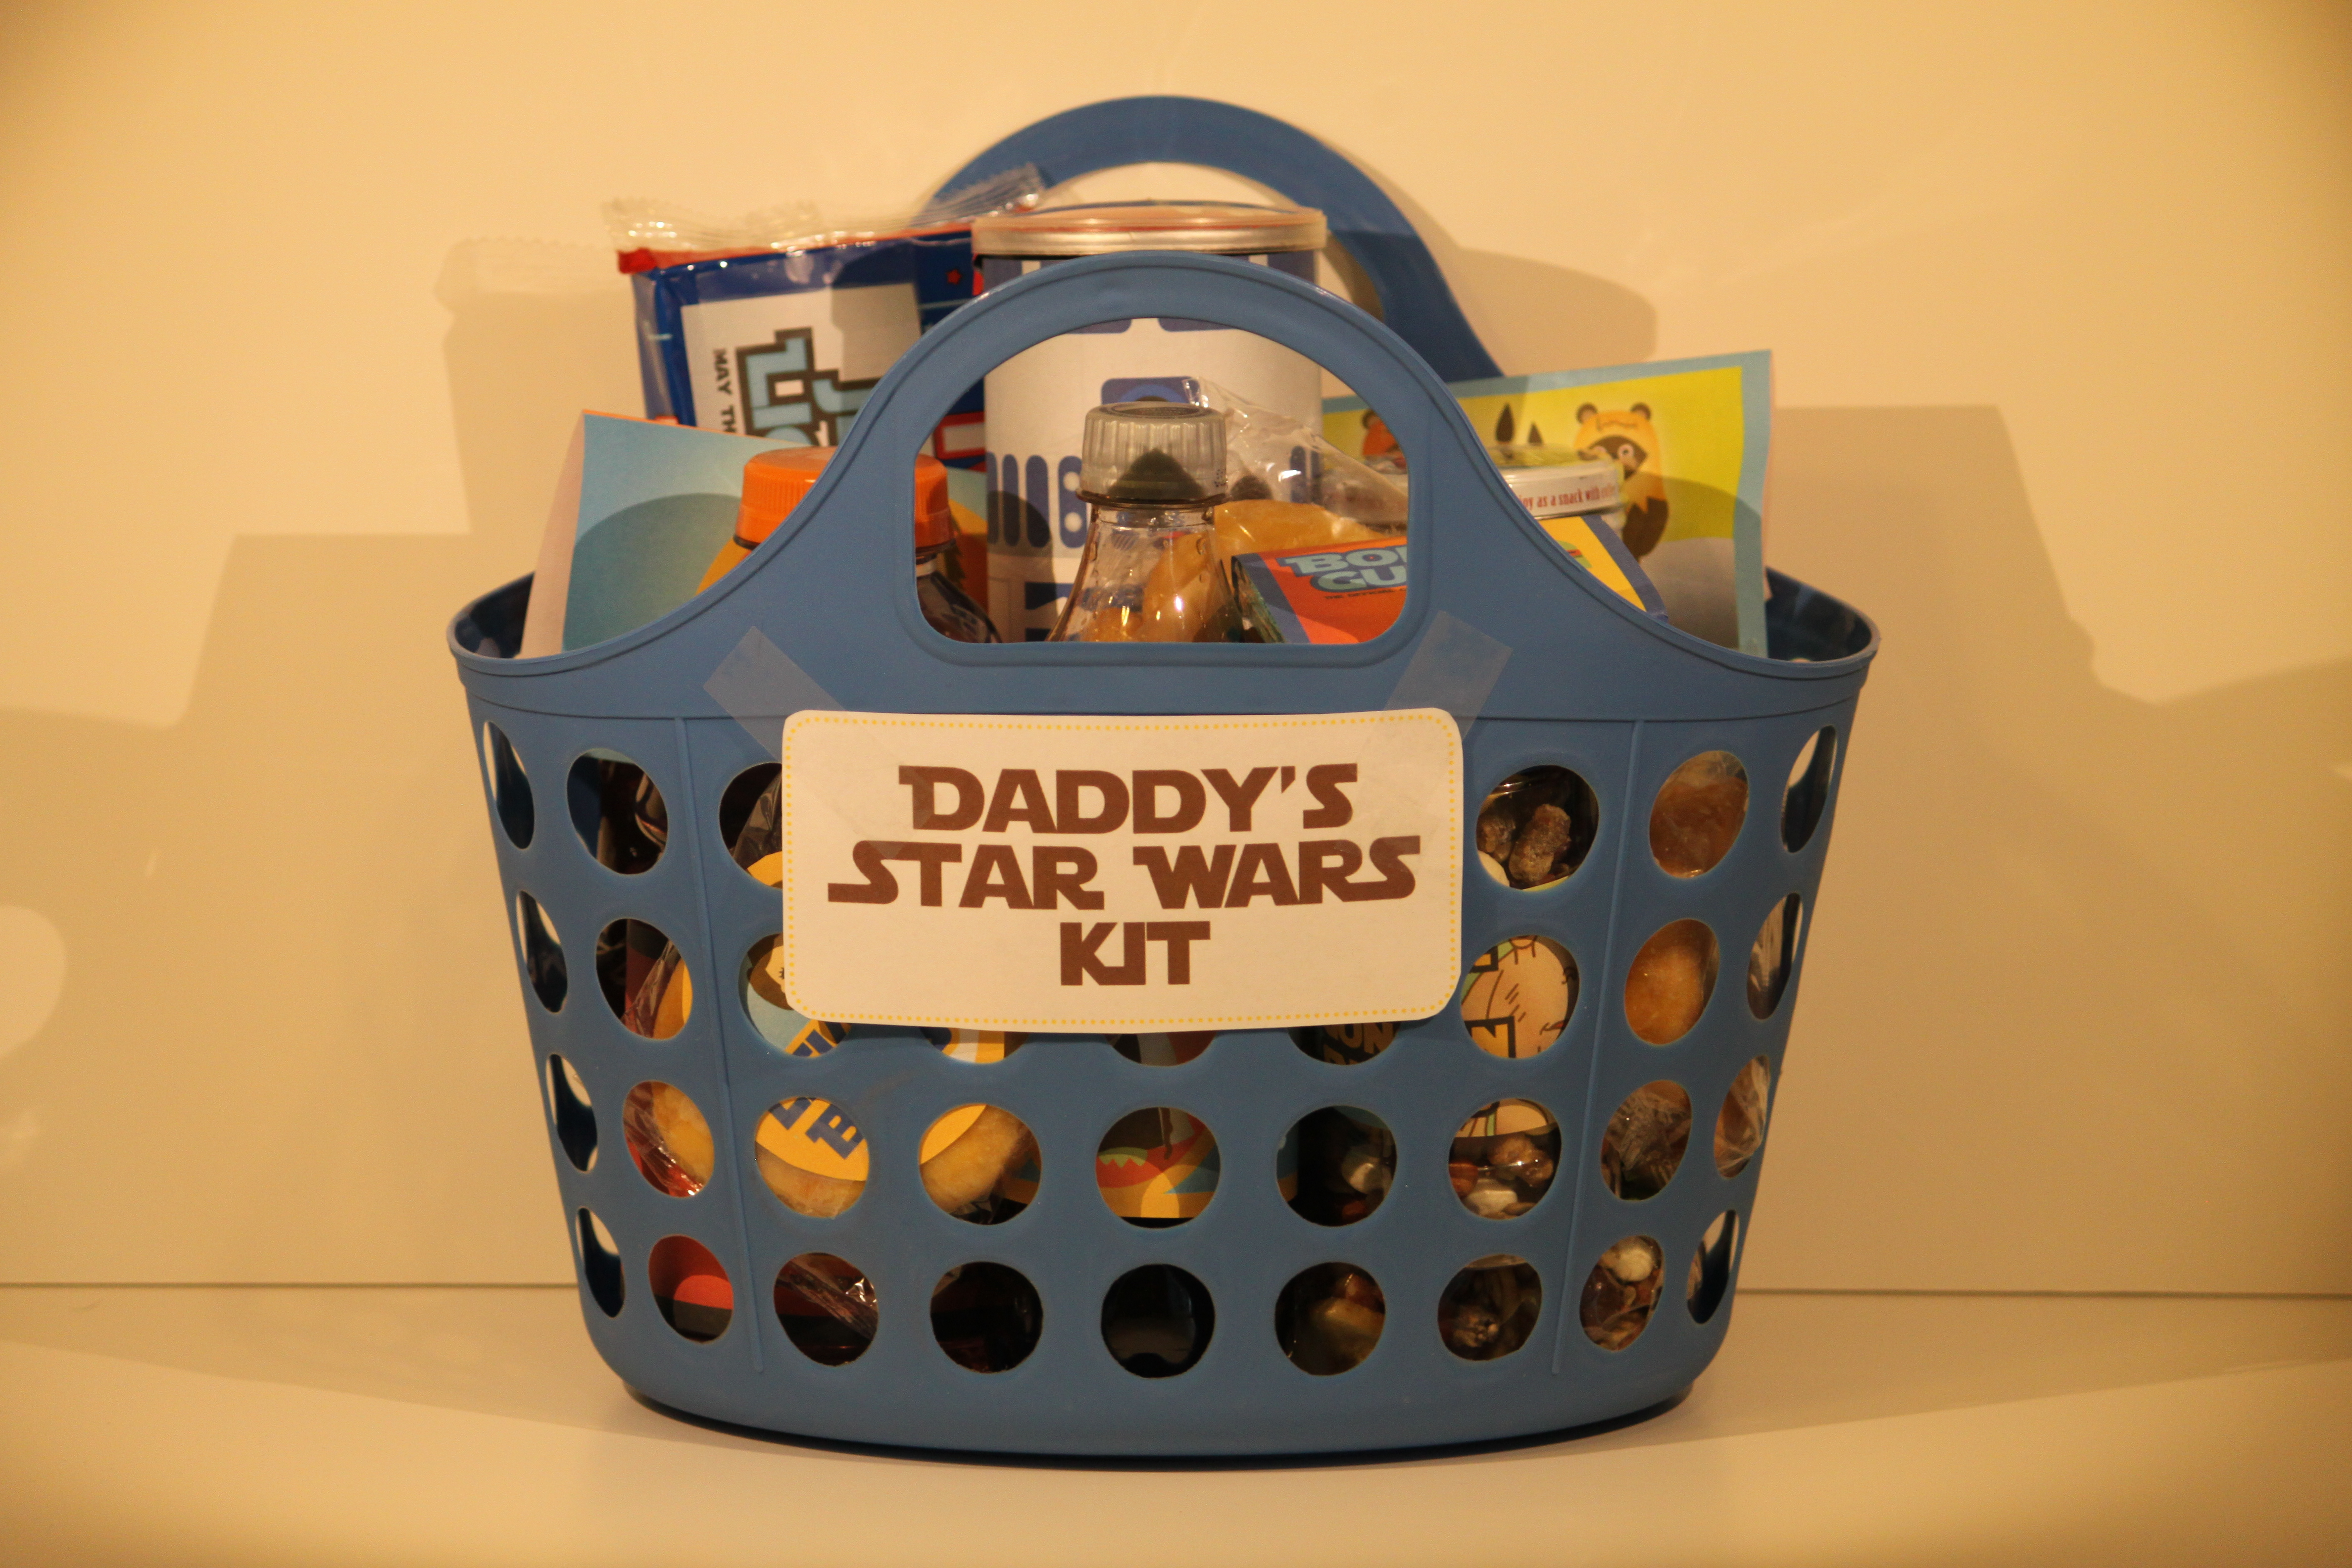 Star Wars Kit Gift | Penny's Food Blog - photo#41